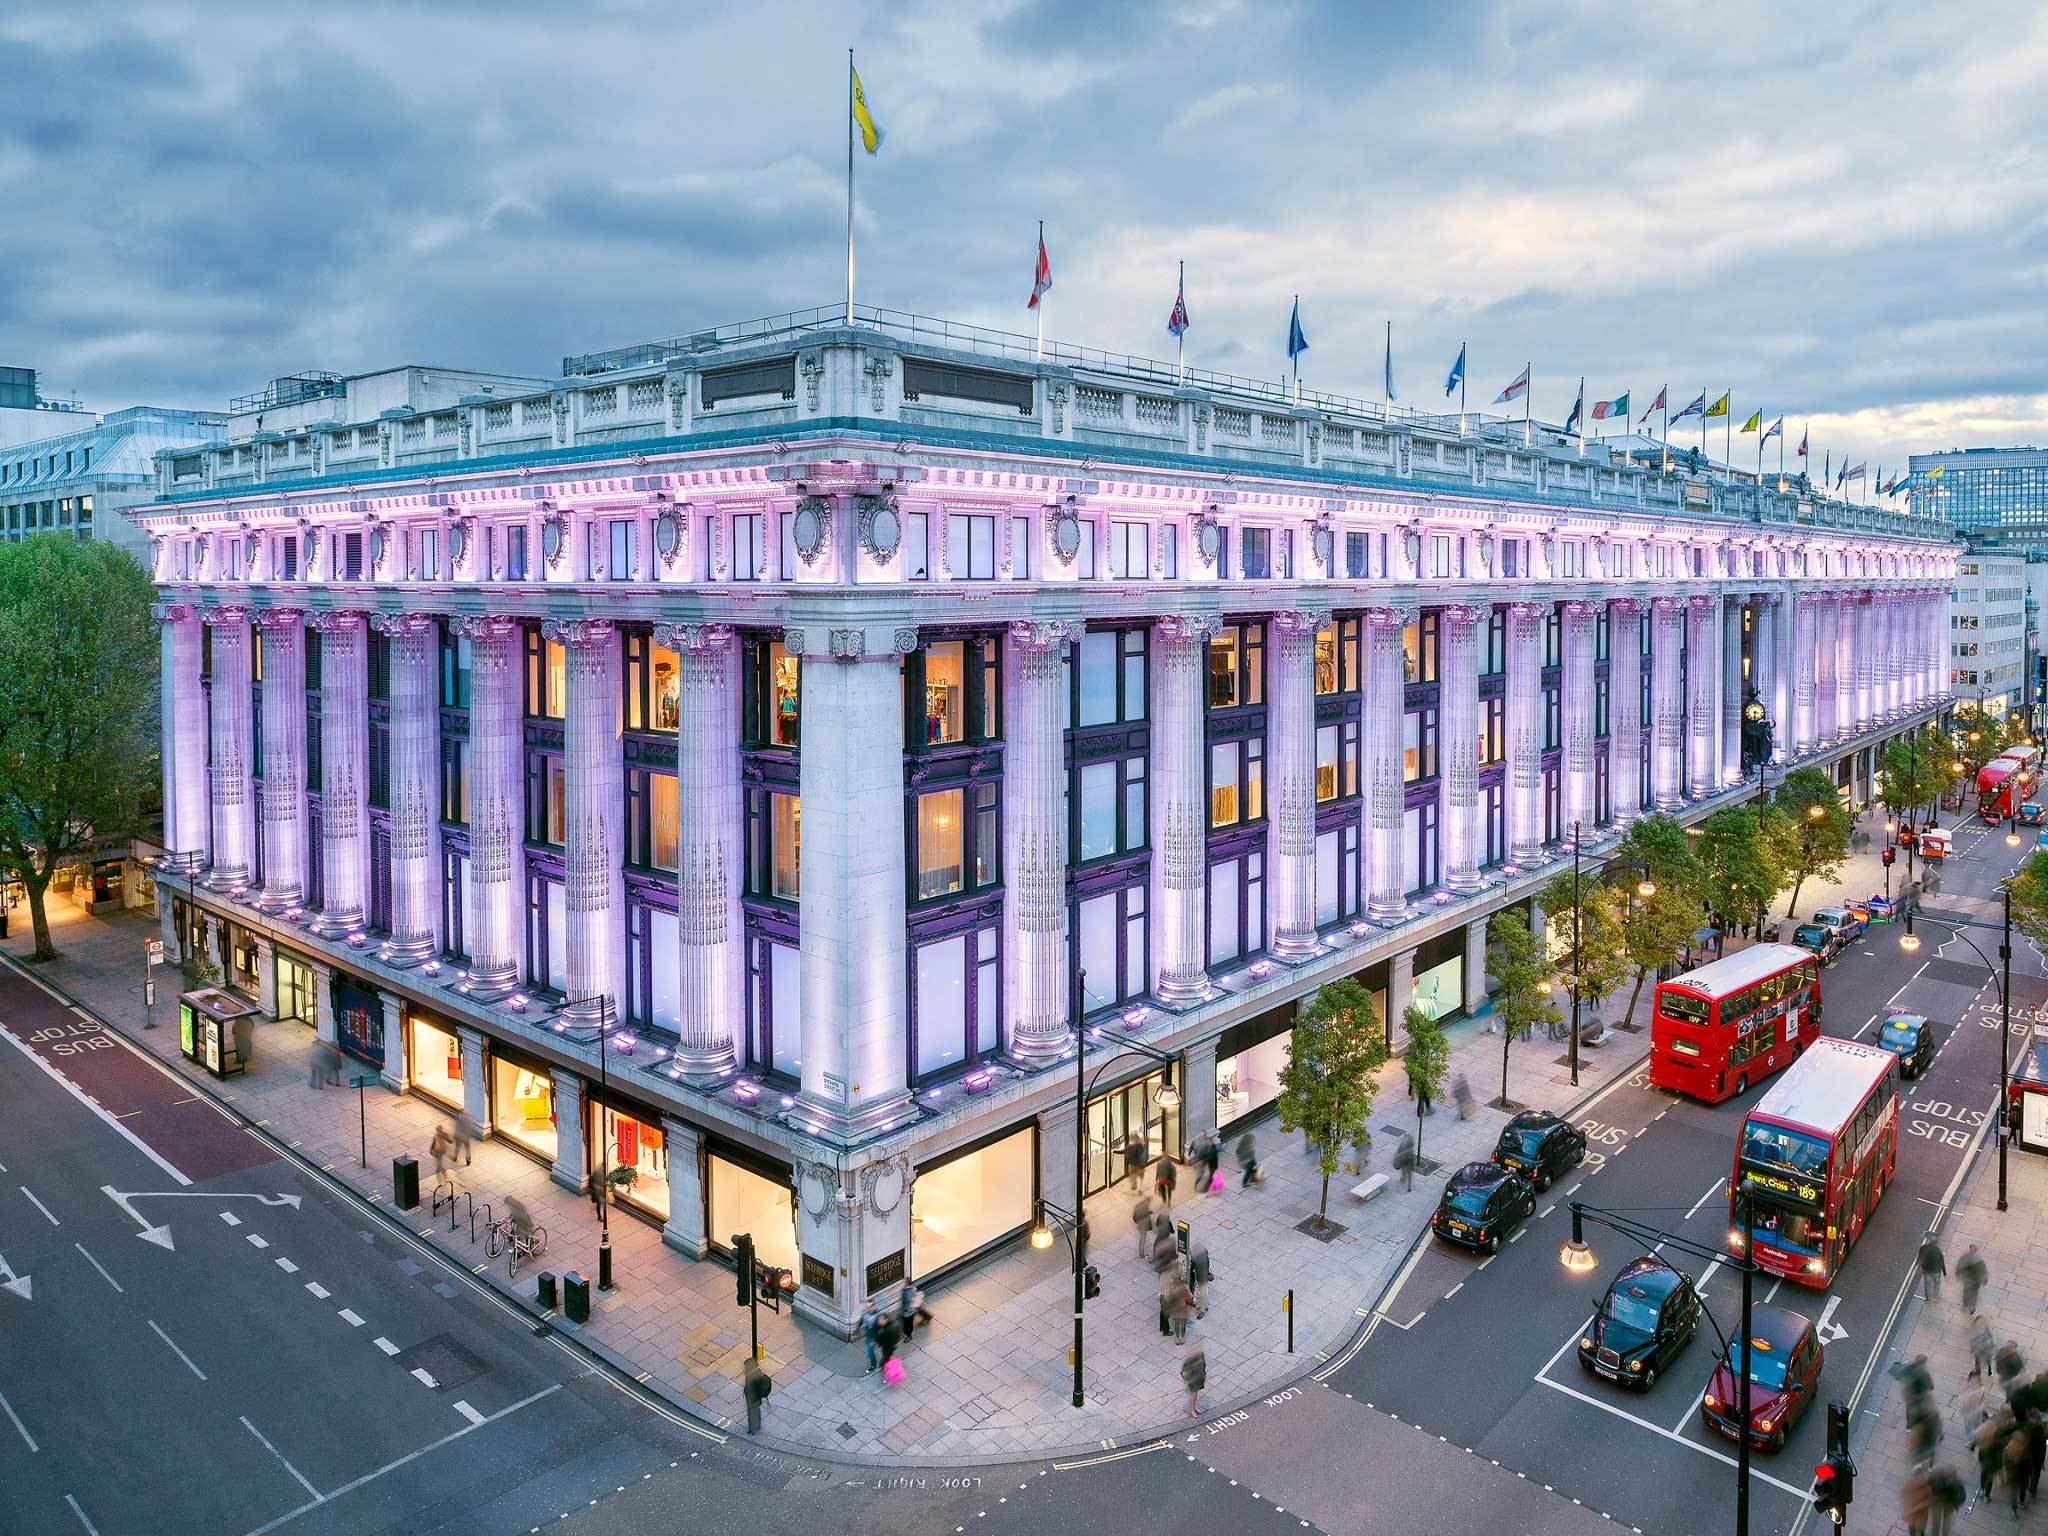 100 best shops London: Selfridges